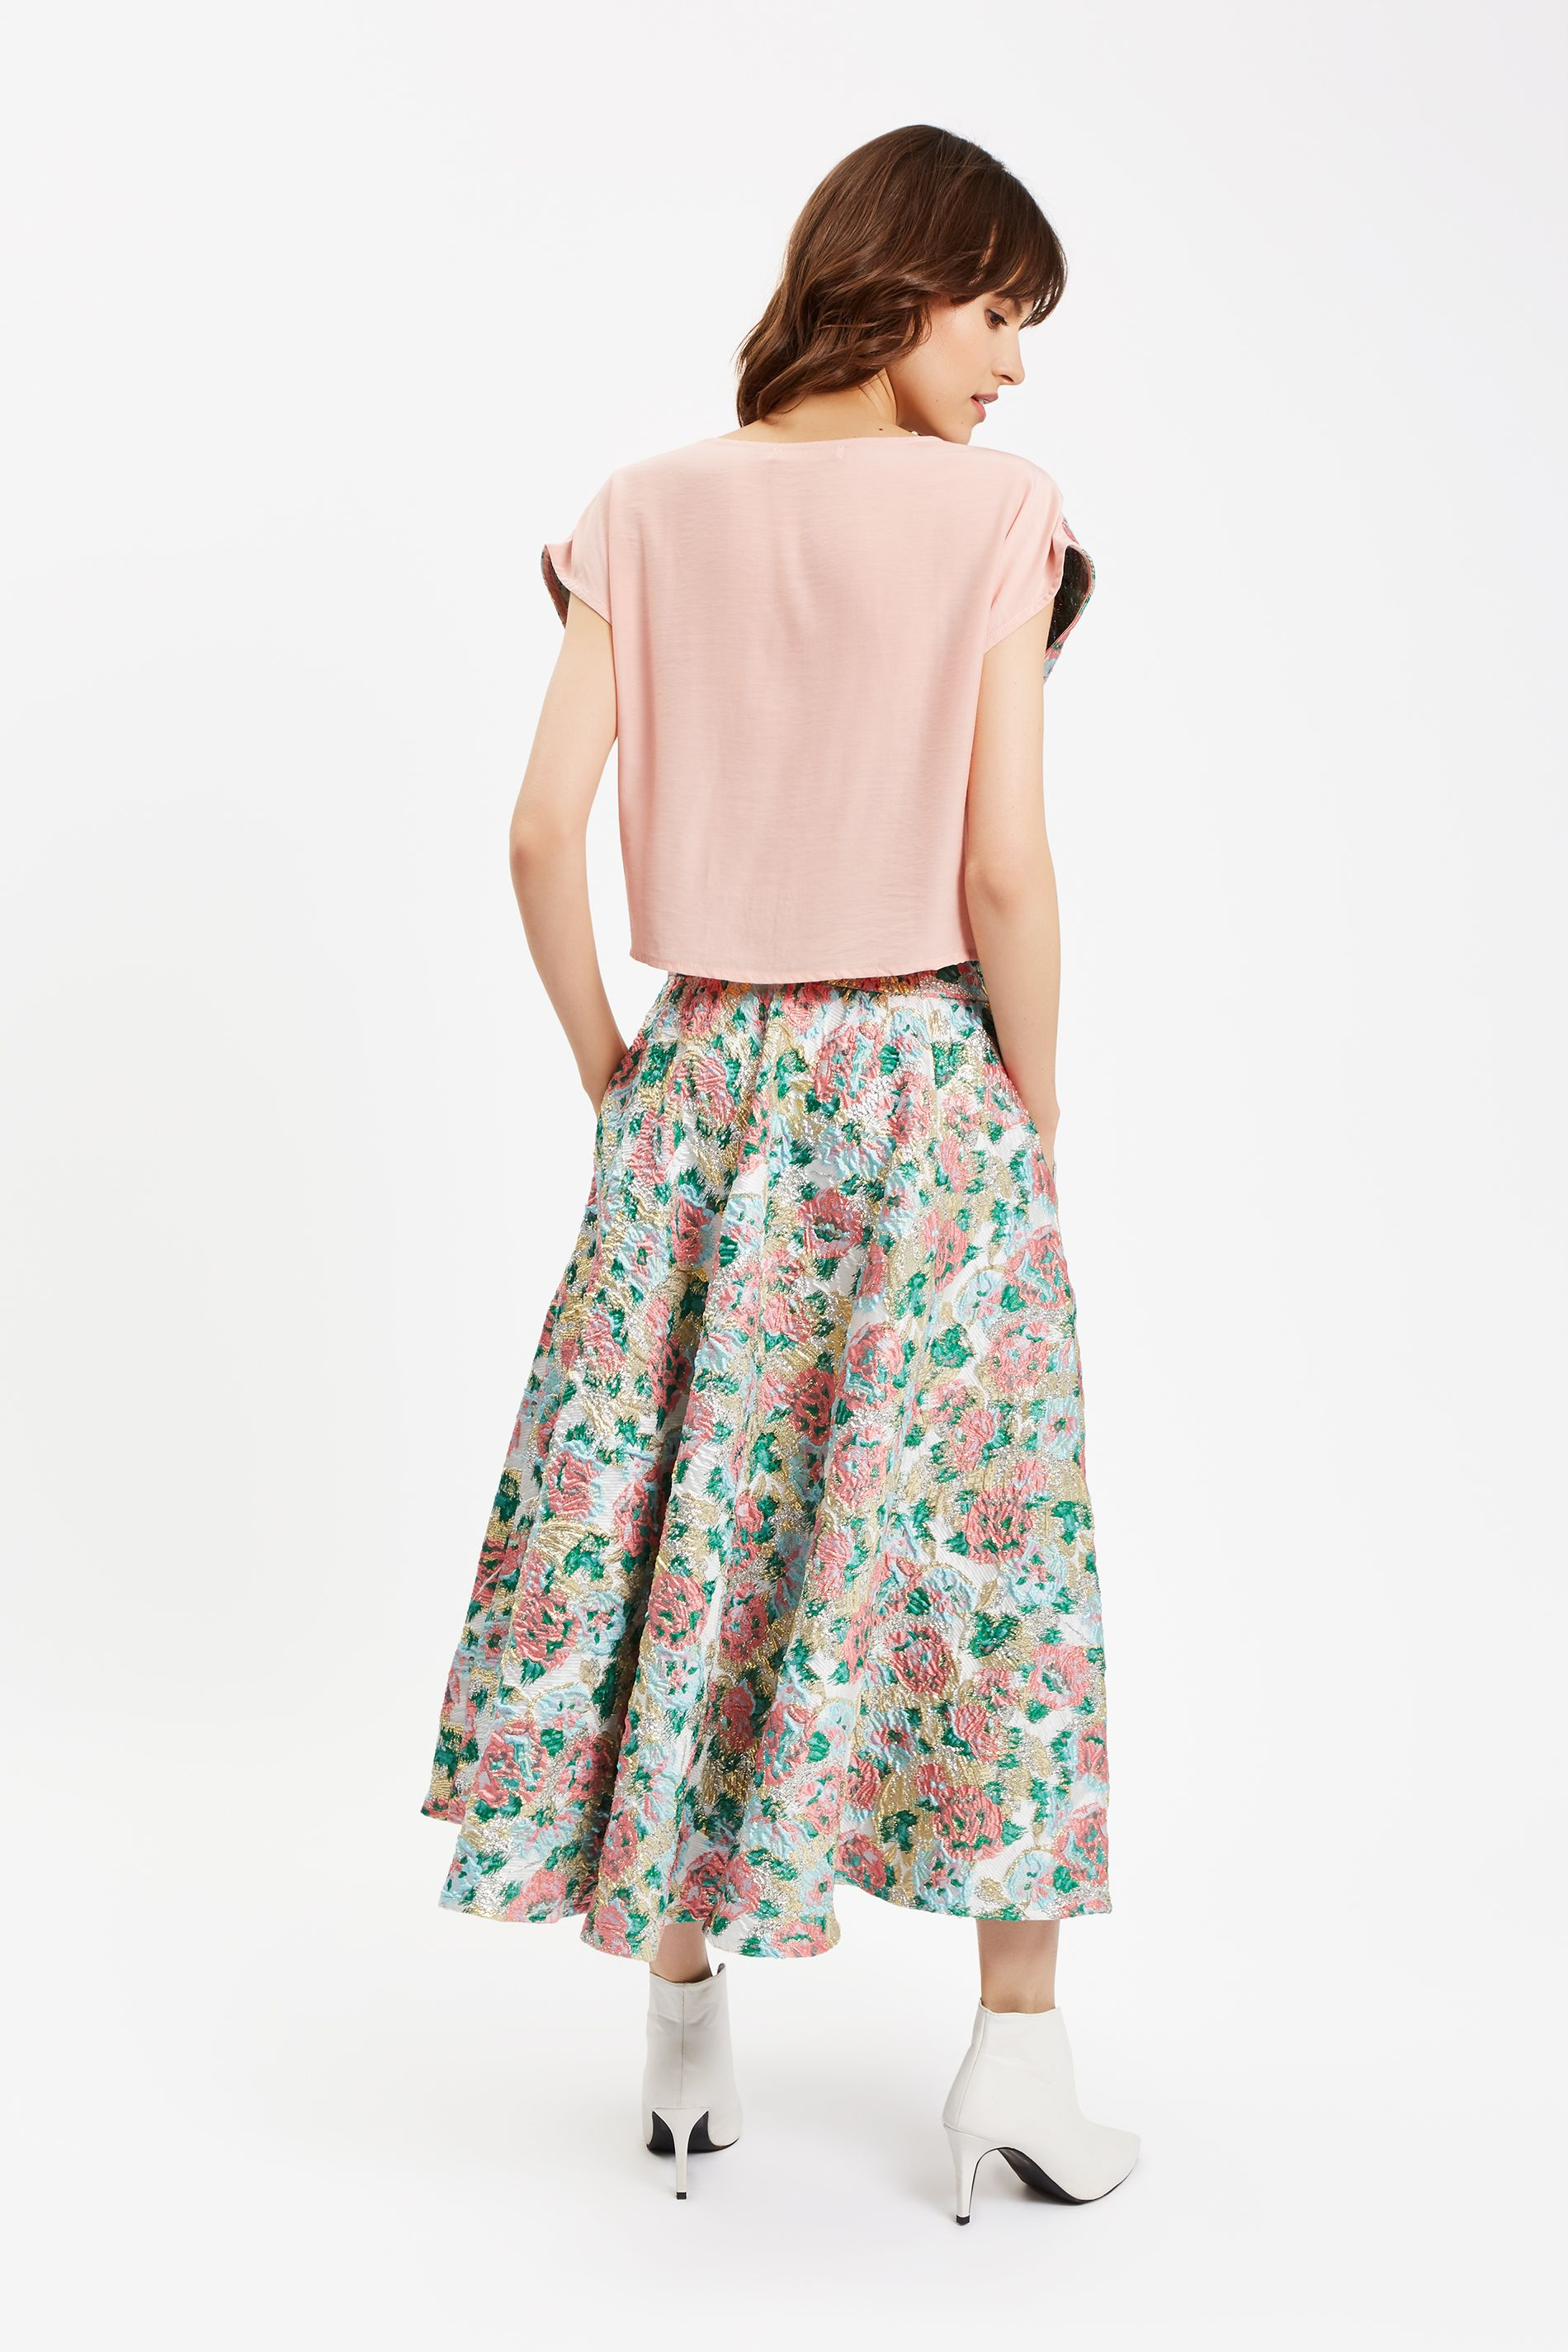 Ambitious Floral Top in Pink